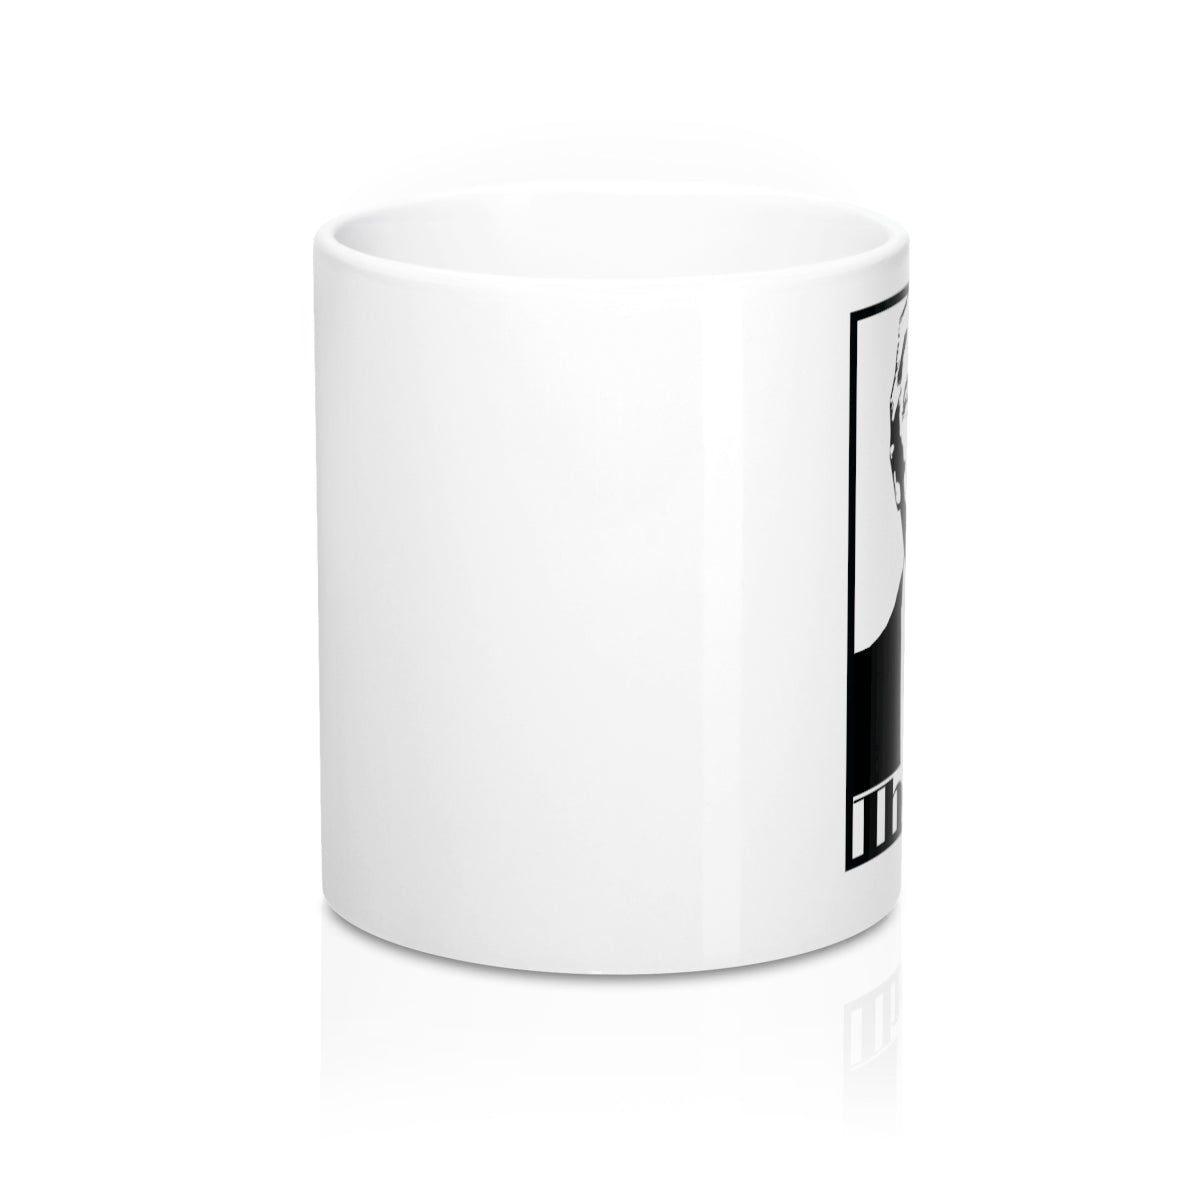 'The Don' 11oz Mug